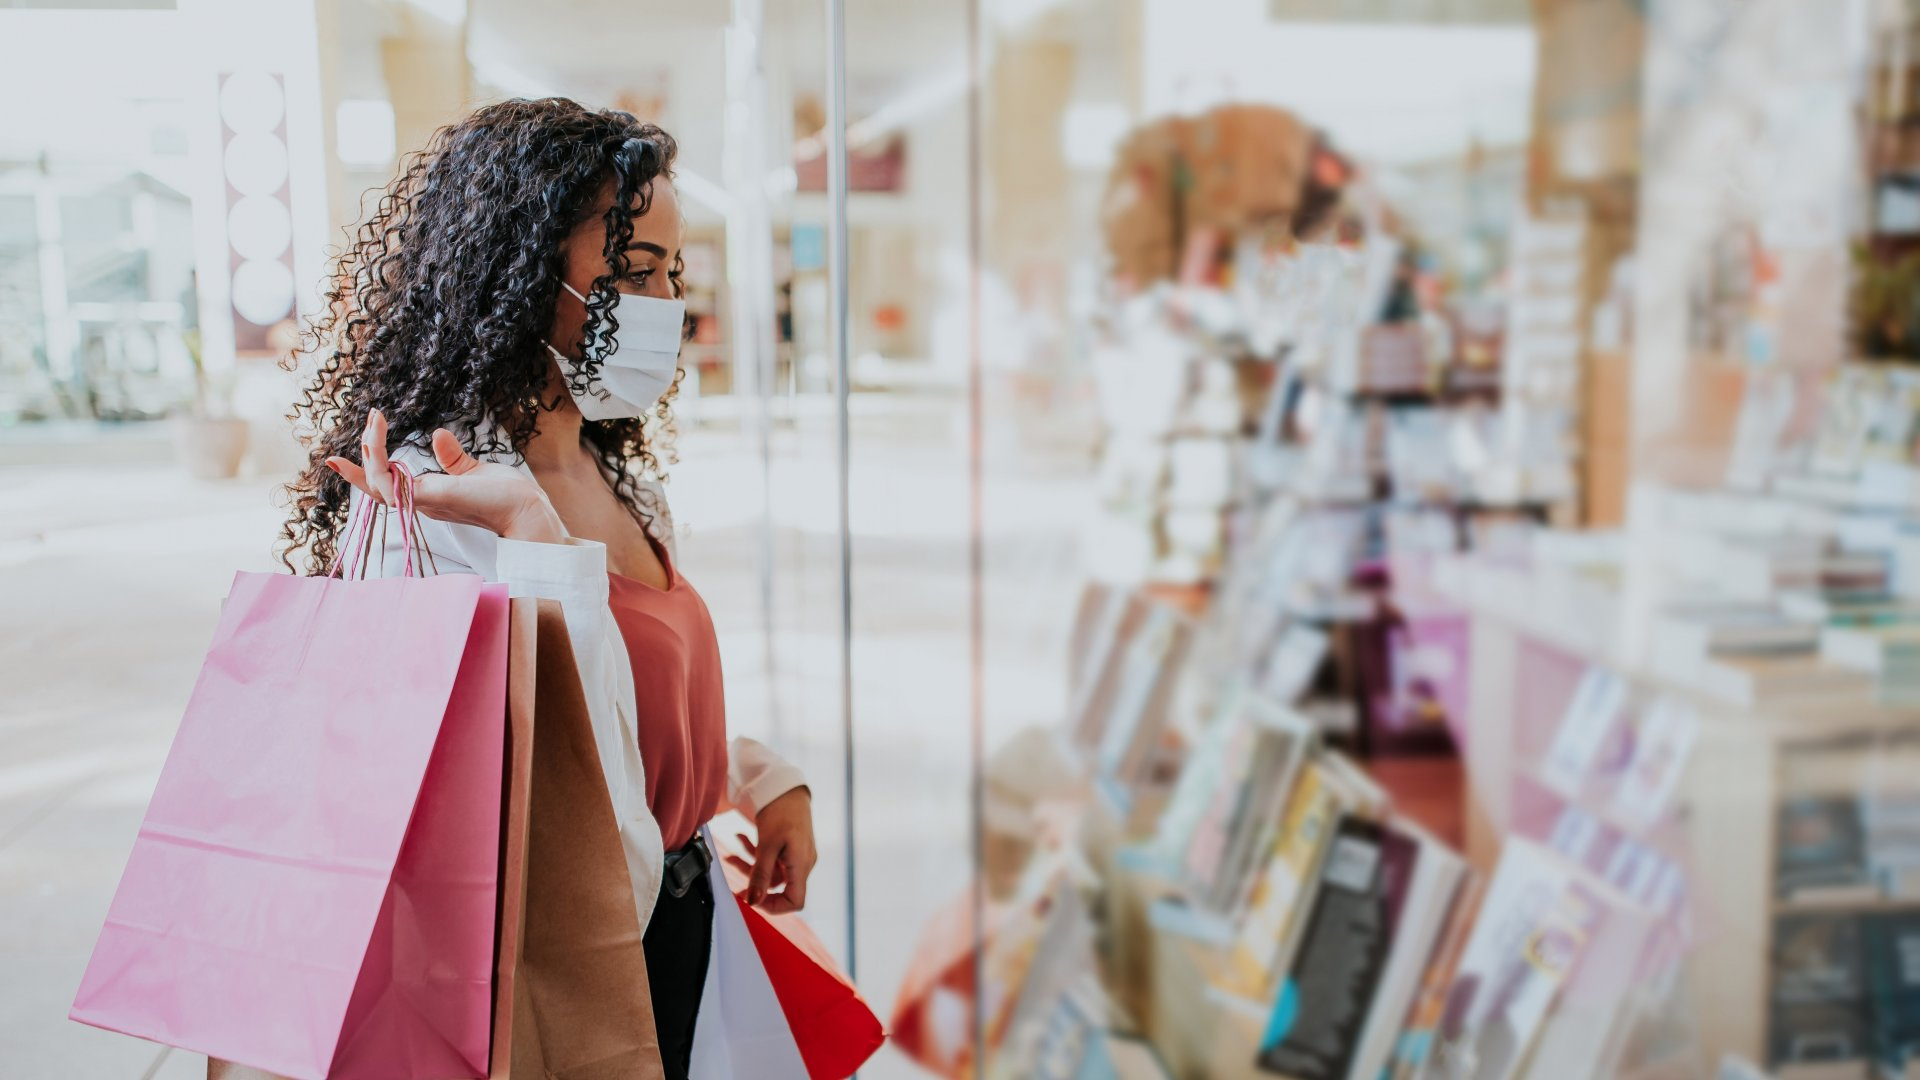 Important facts about mystery shoppers